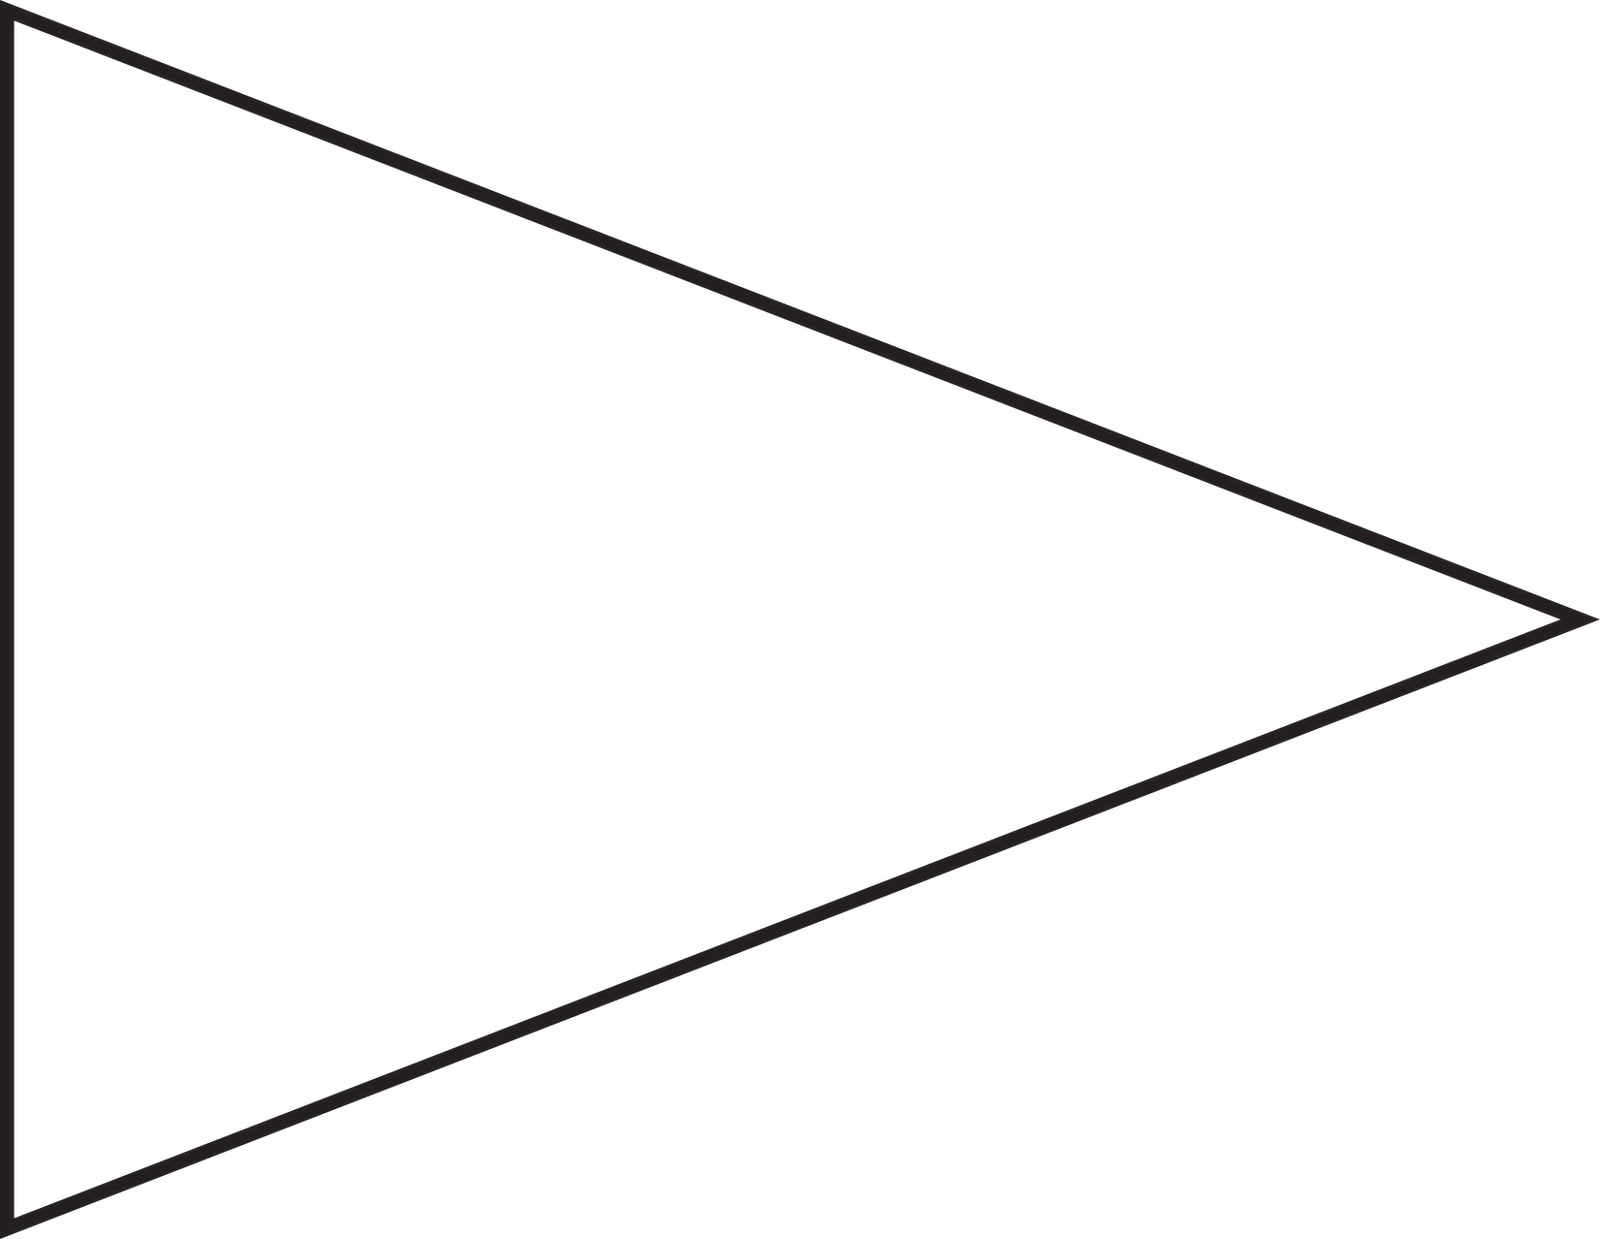 triangle clipart black and white - Clipground